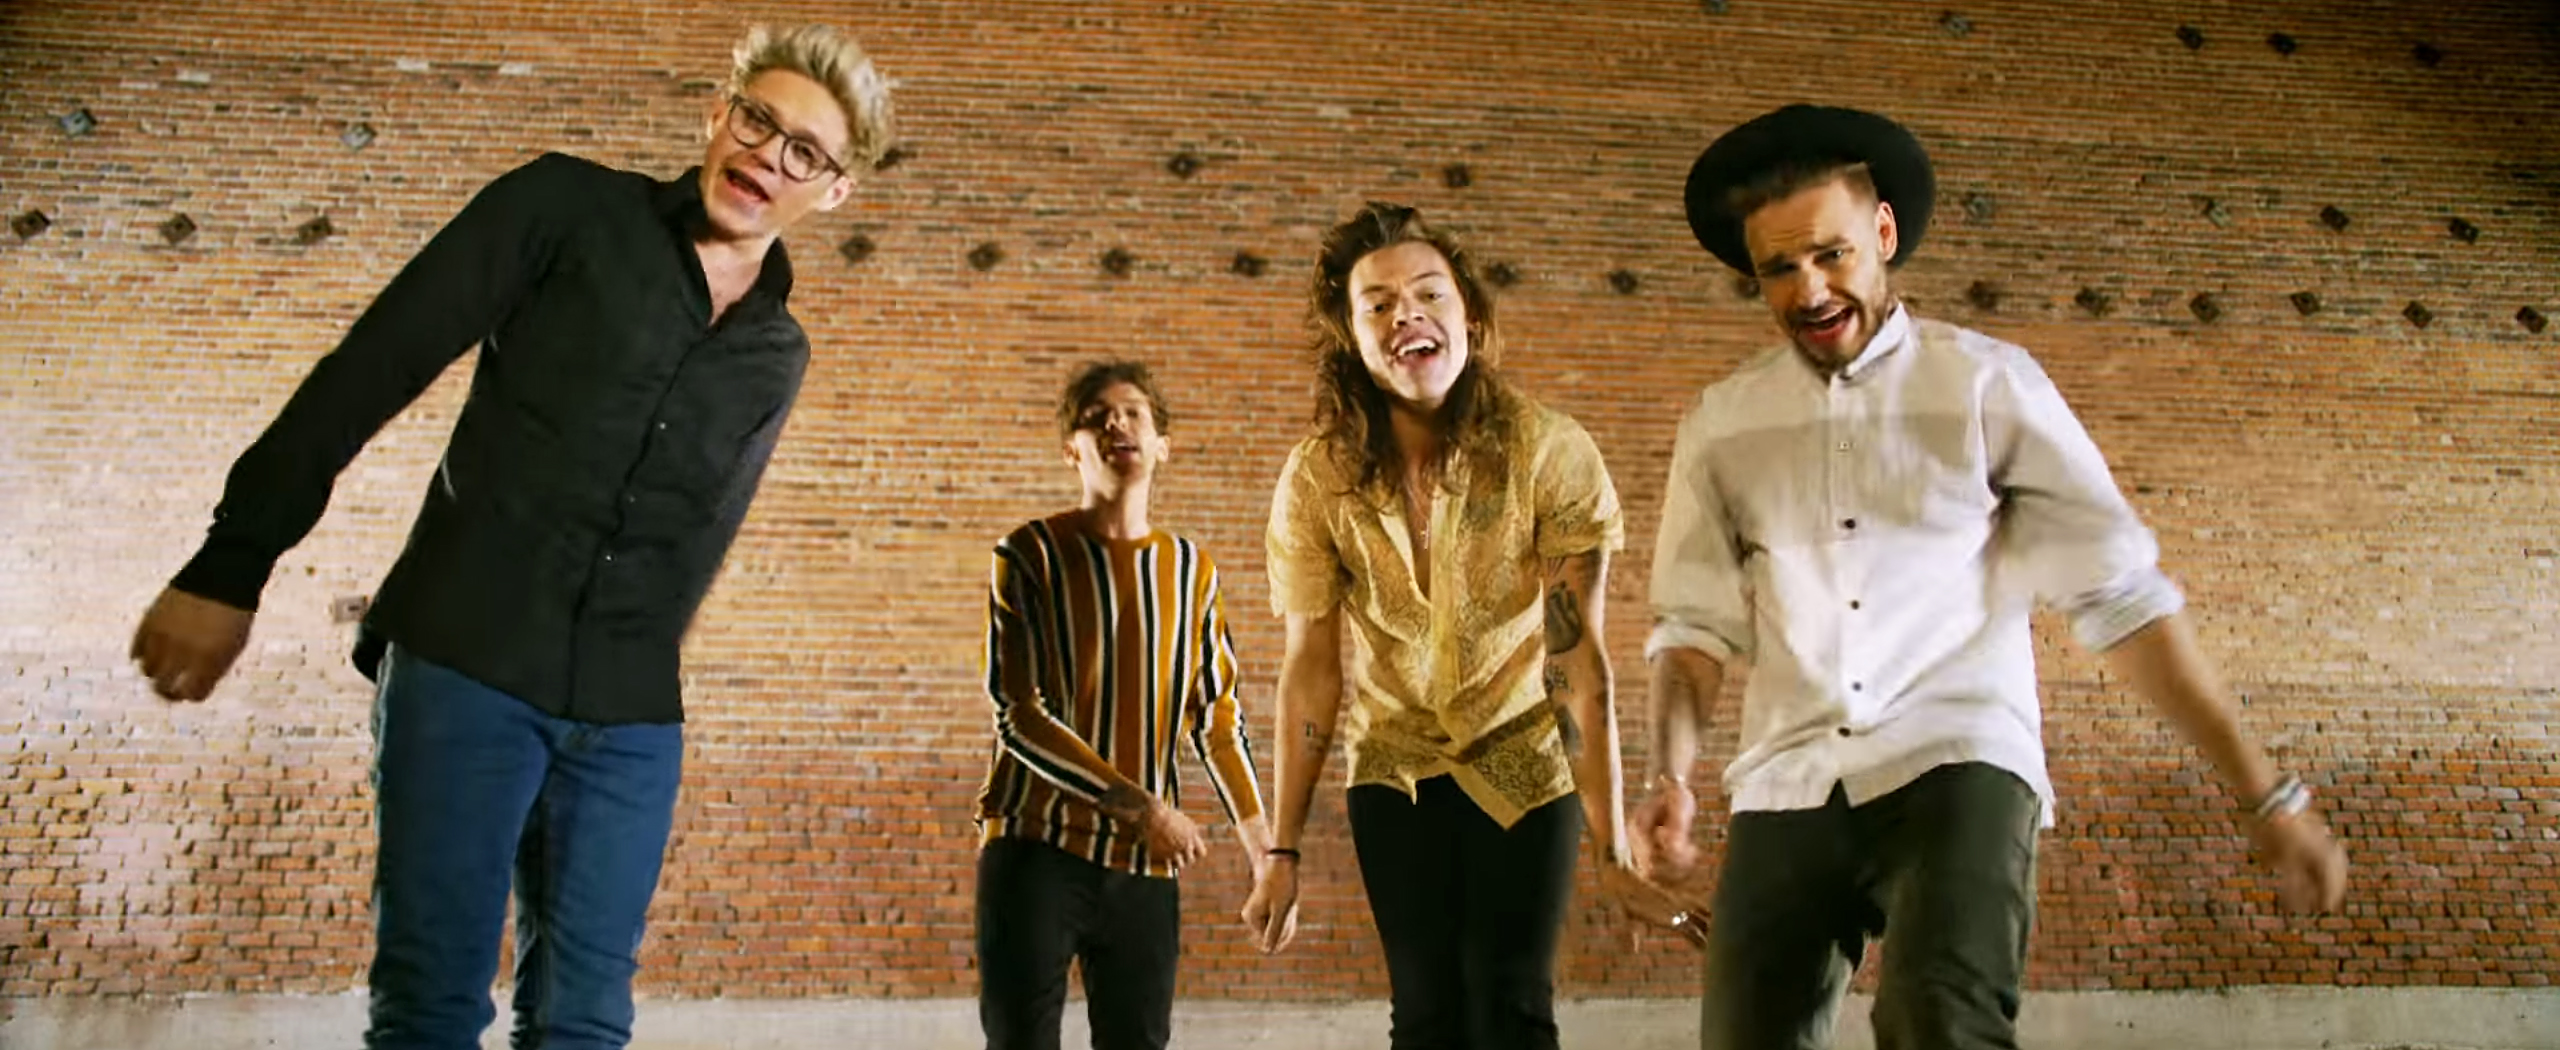 Watch One Direction Reflect on Their 'History' in New Video